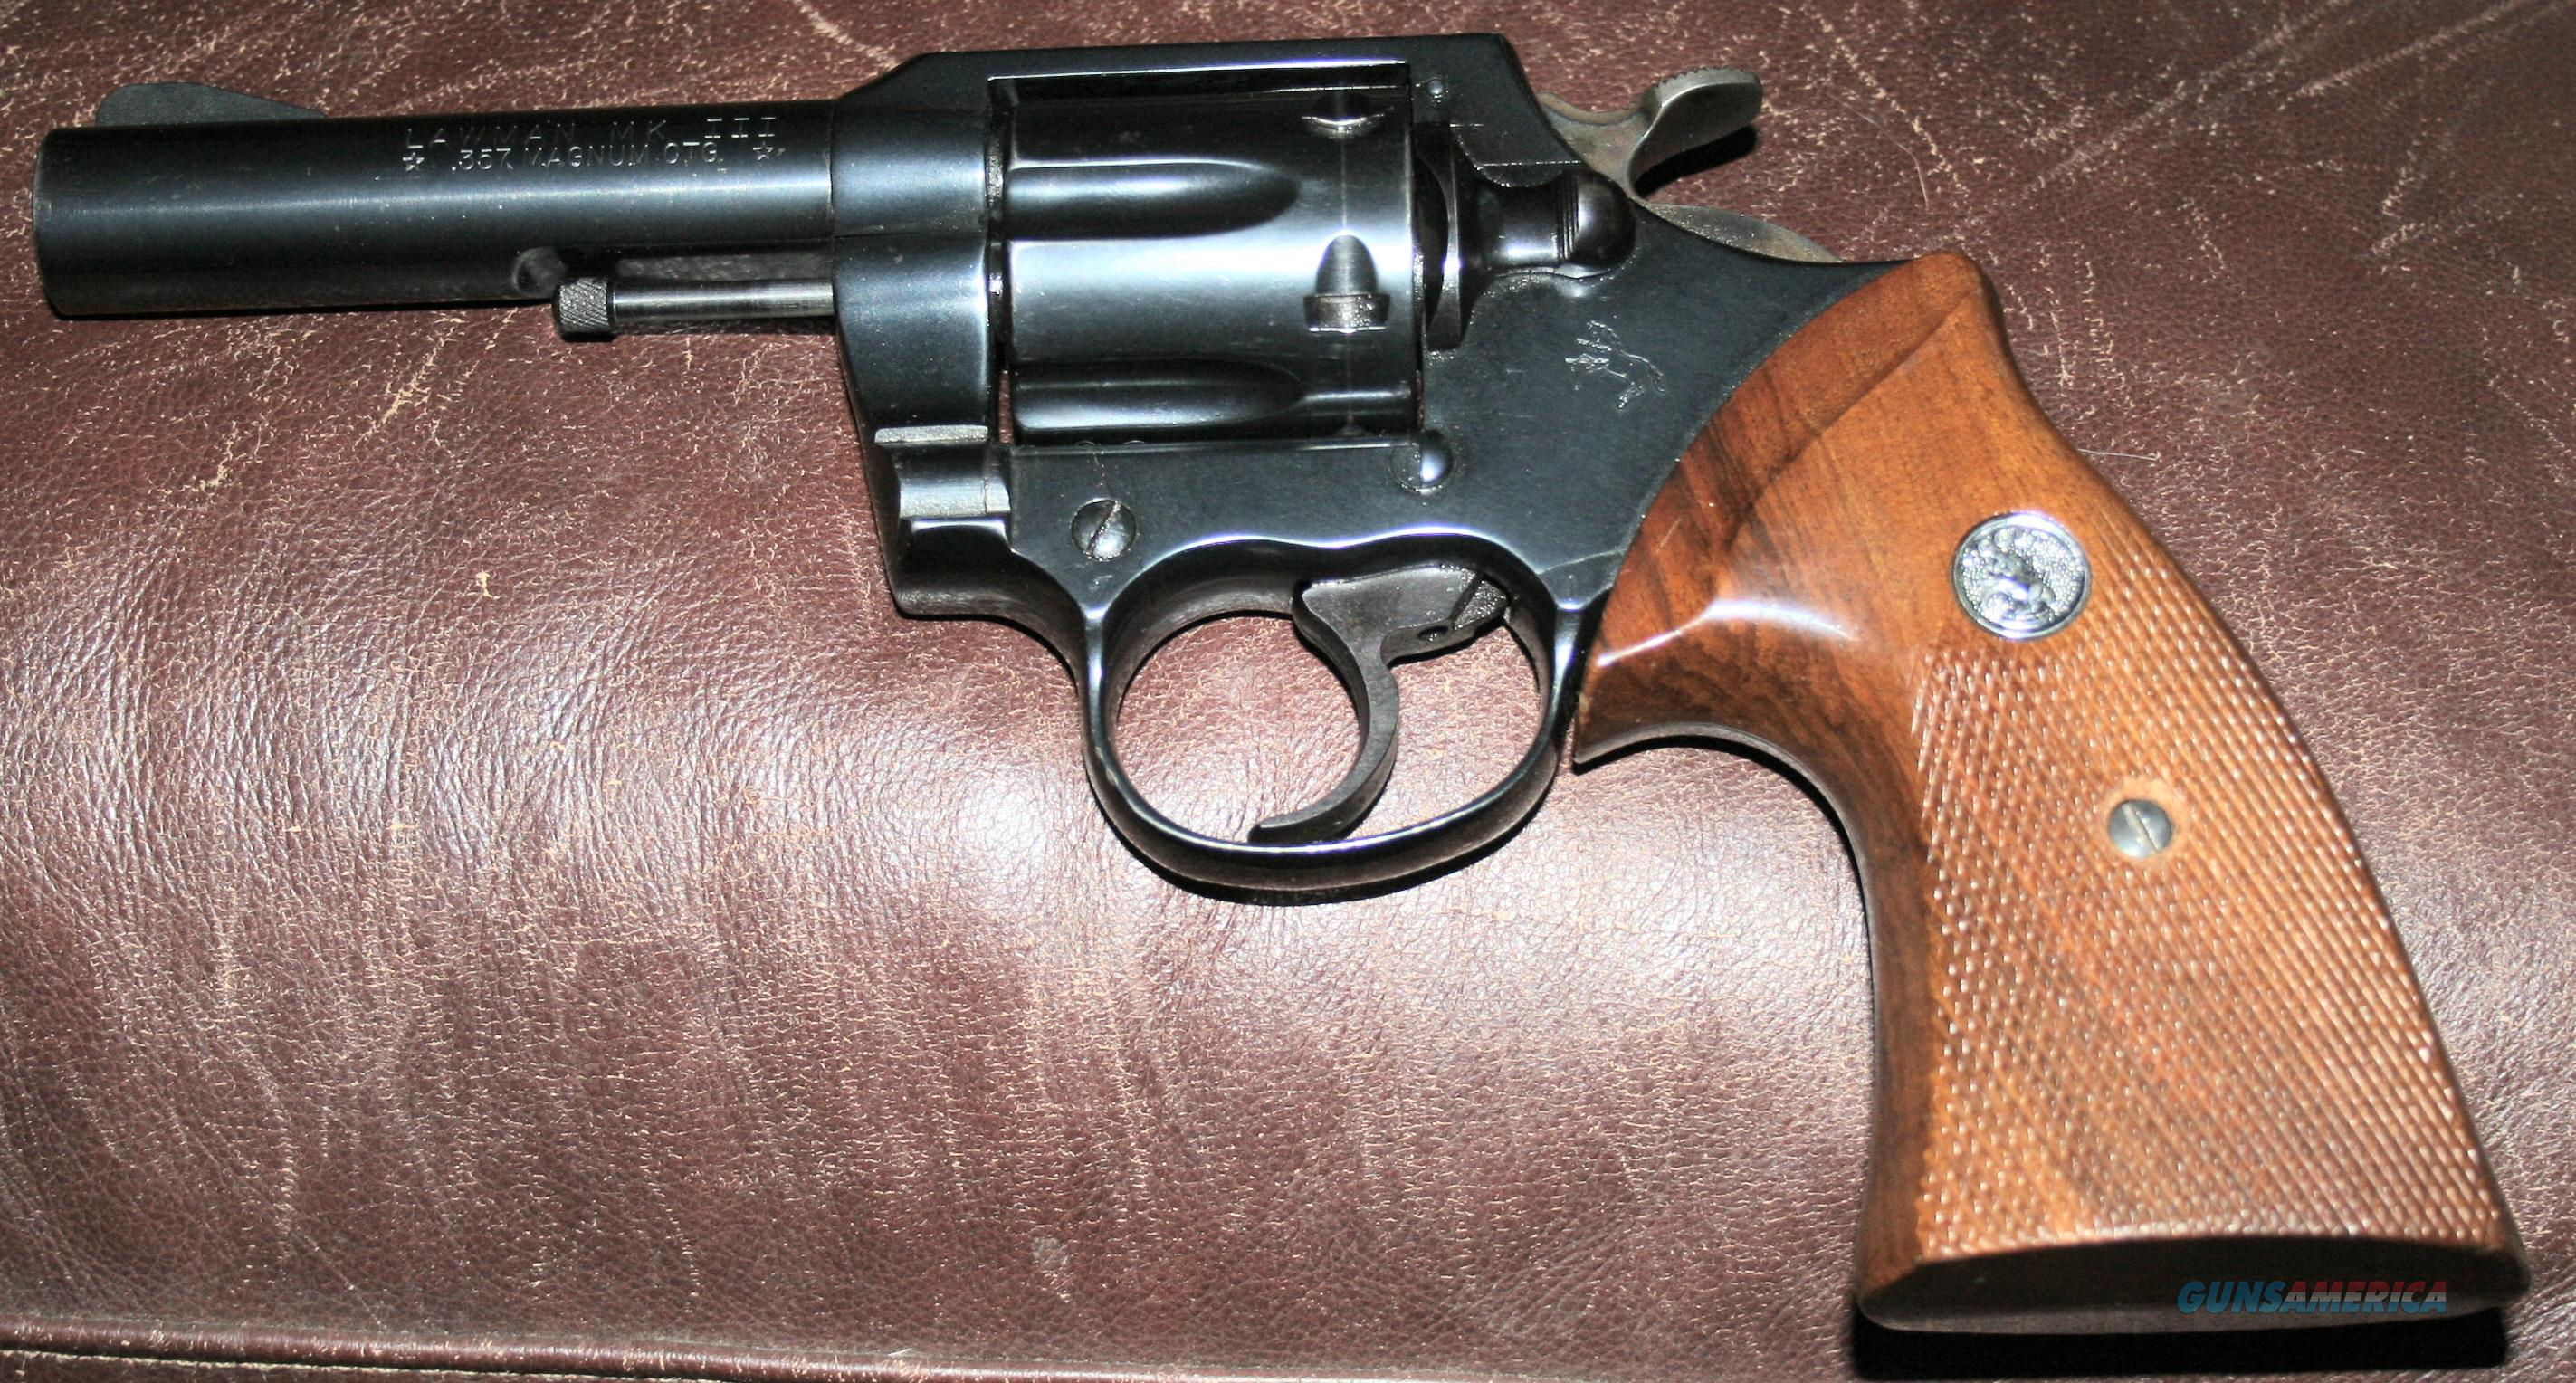 Colt Lawman MK III 357 MAG 4 INCH  Guns > Pistols > Colt Double Action Revolvers- Modern